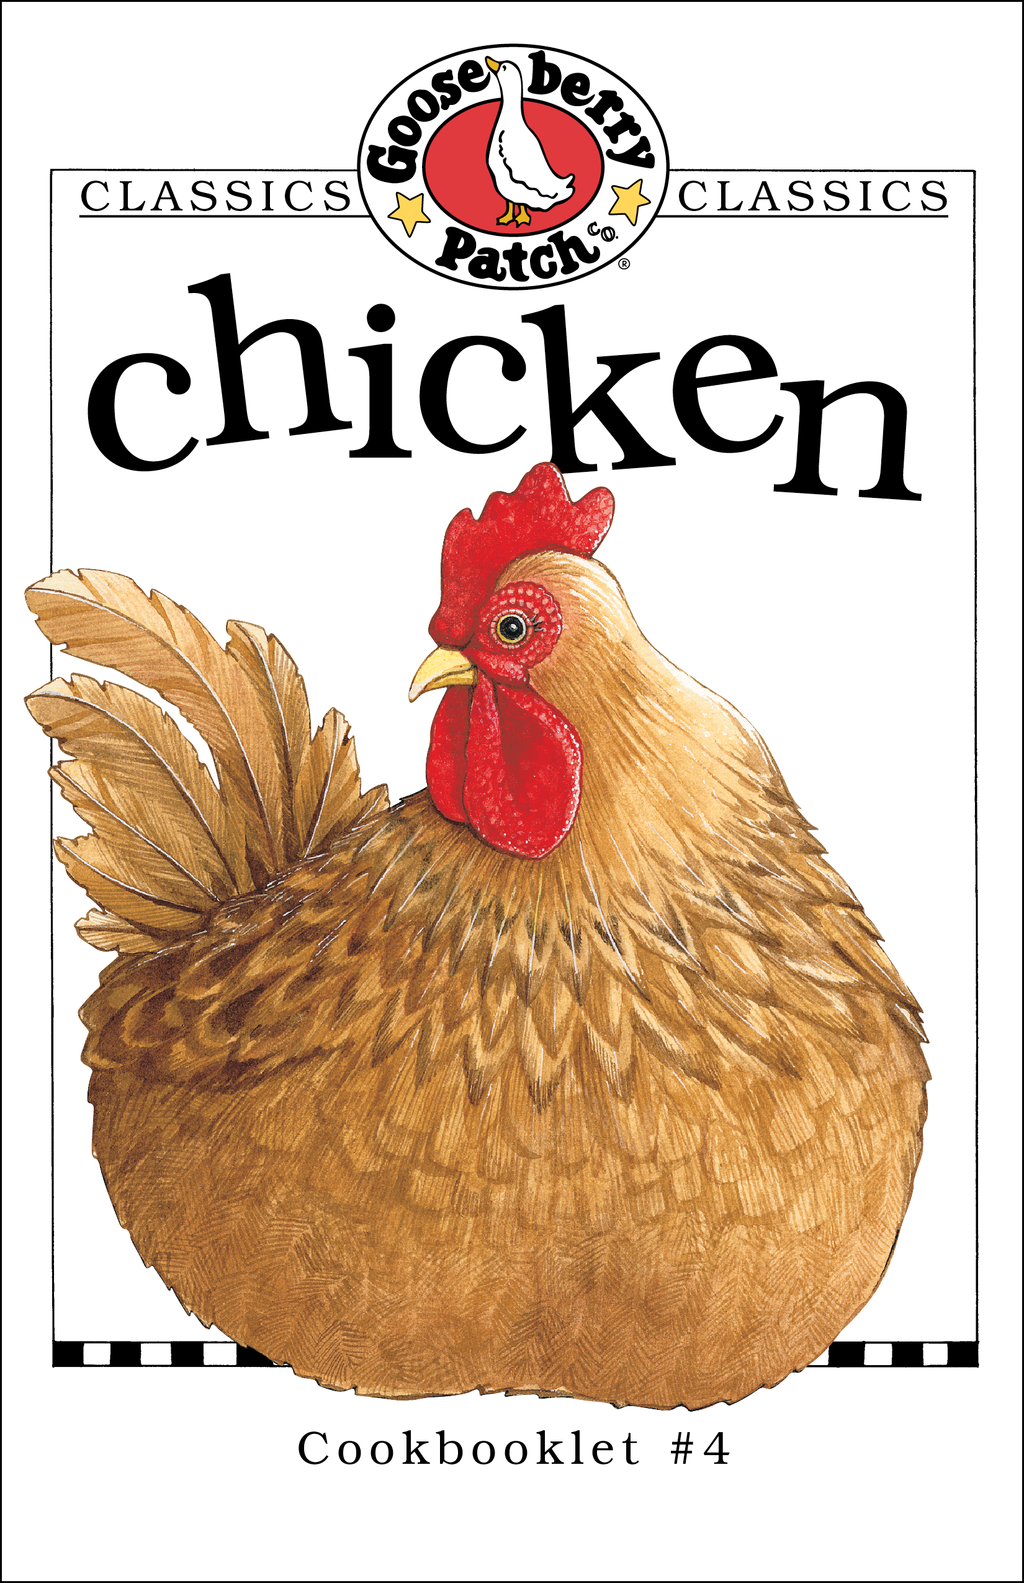 Chicken Cookbook: Get a taste of Gooseberry Patch in this collection of over 20 favorite chicken recipes!